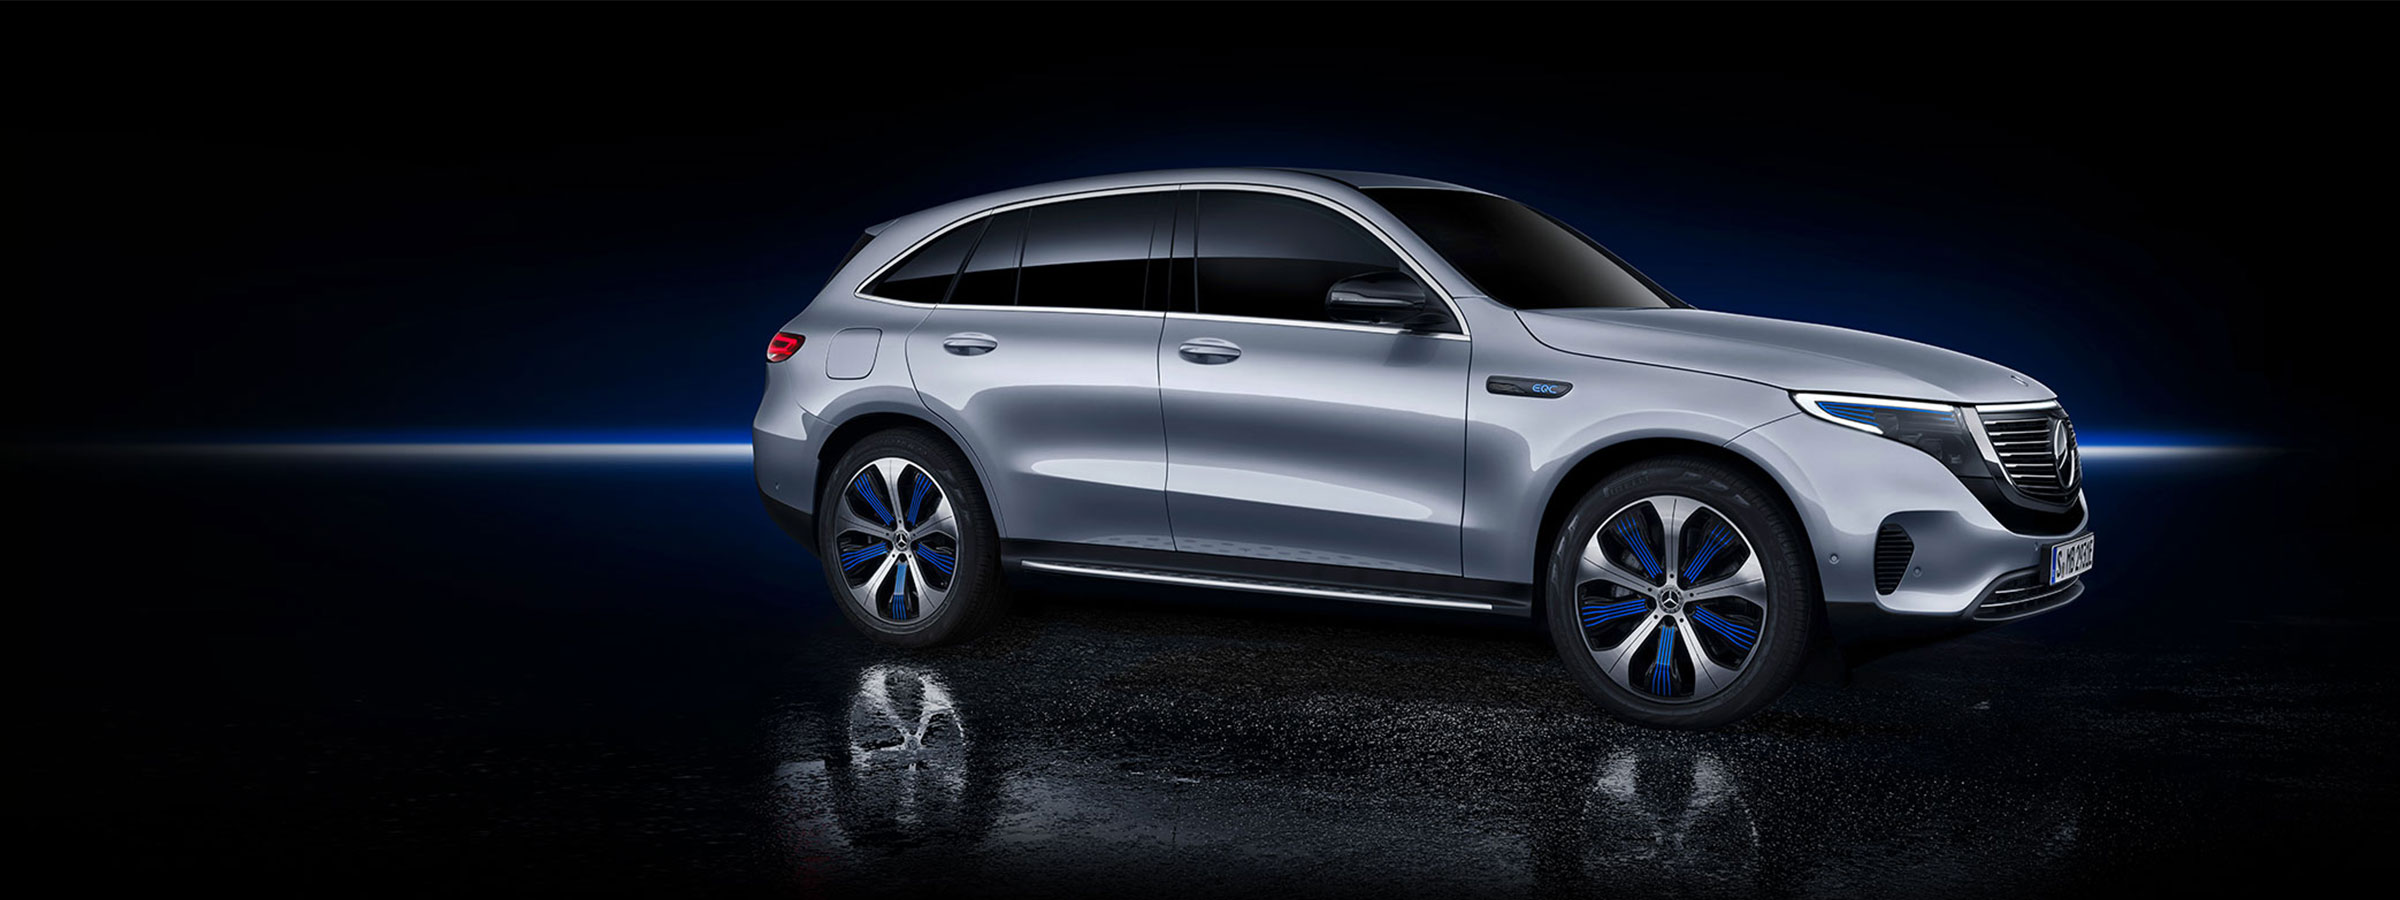 Mercedes-Benz EQC electric vehicle hero image